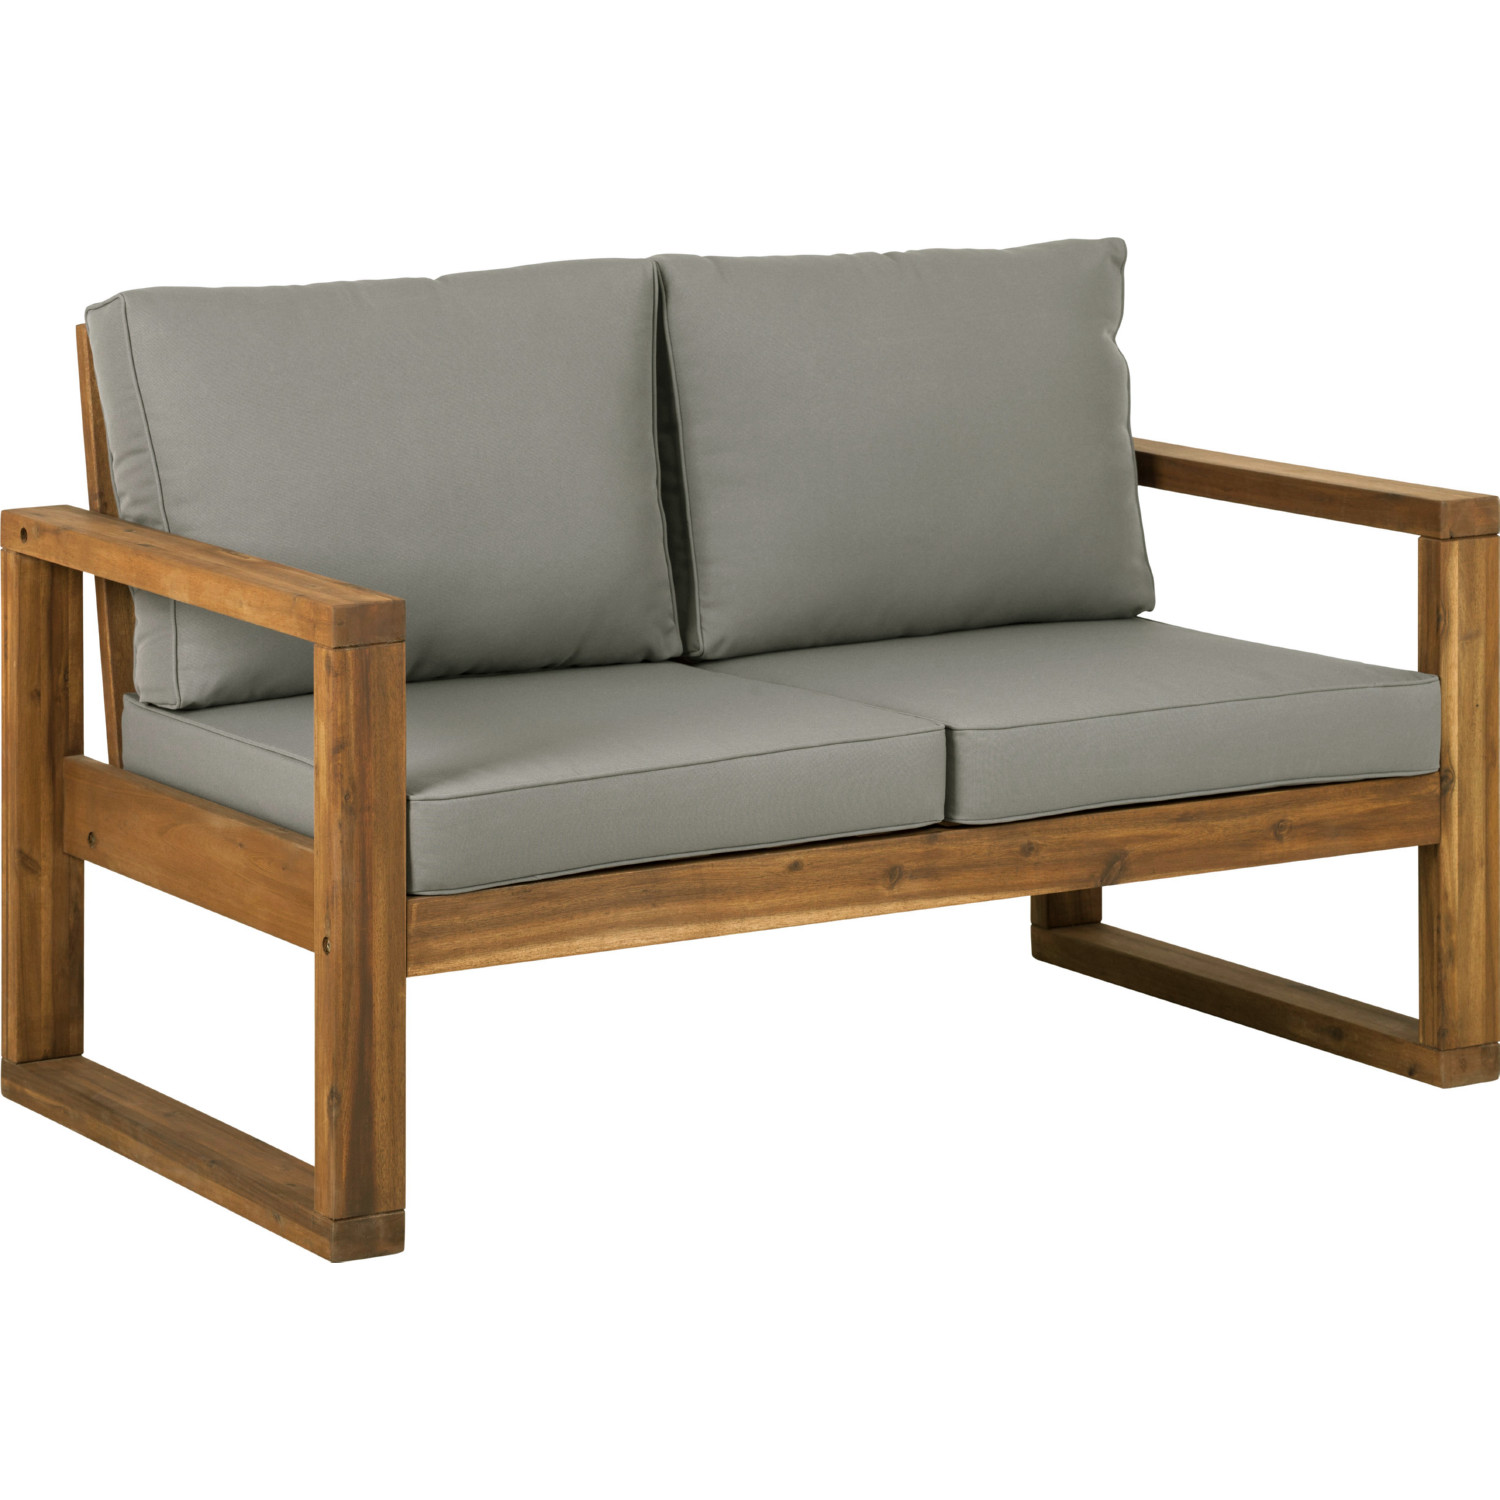 Sensational Modern Patio Loveseat In Brown Acacia Grey Fabric By Walker Edison Alphanode Cool Chair Designs And Ideas Alphanodeonline